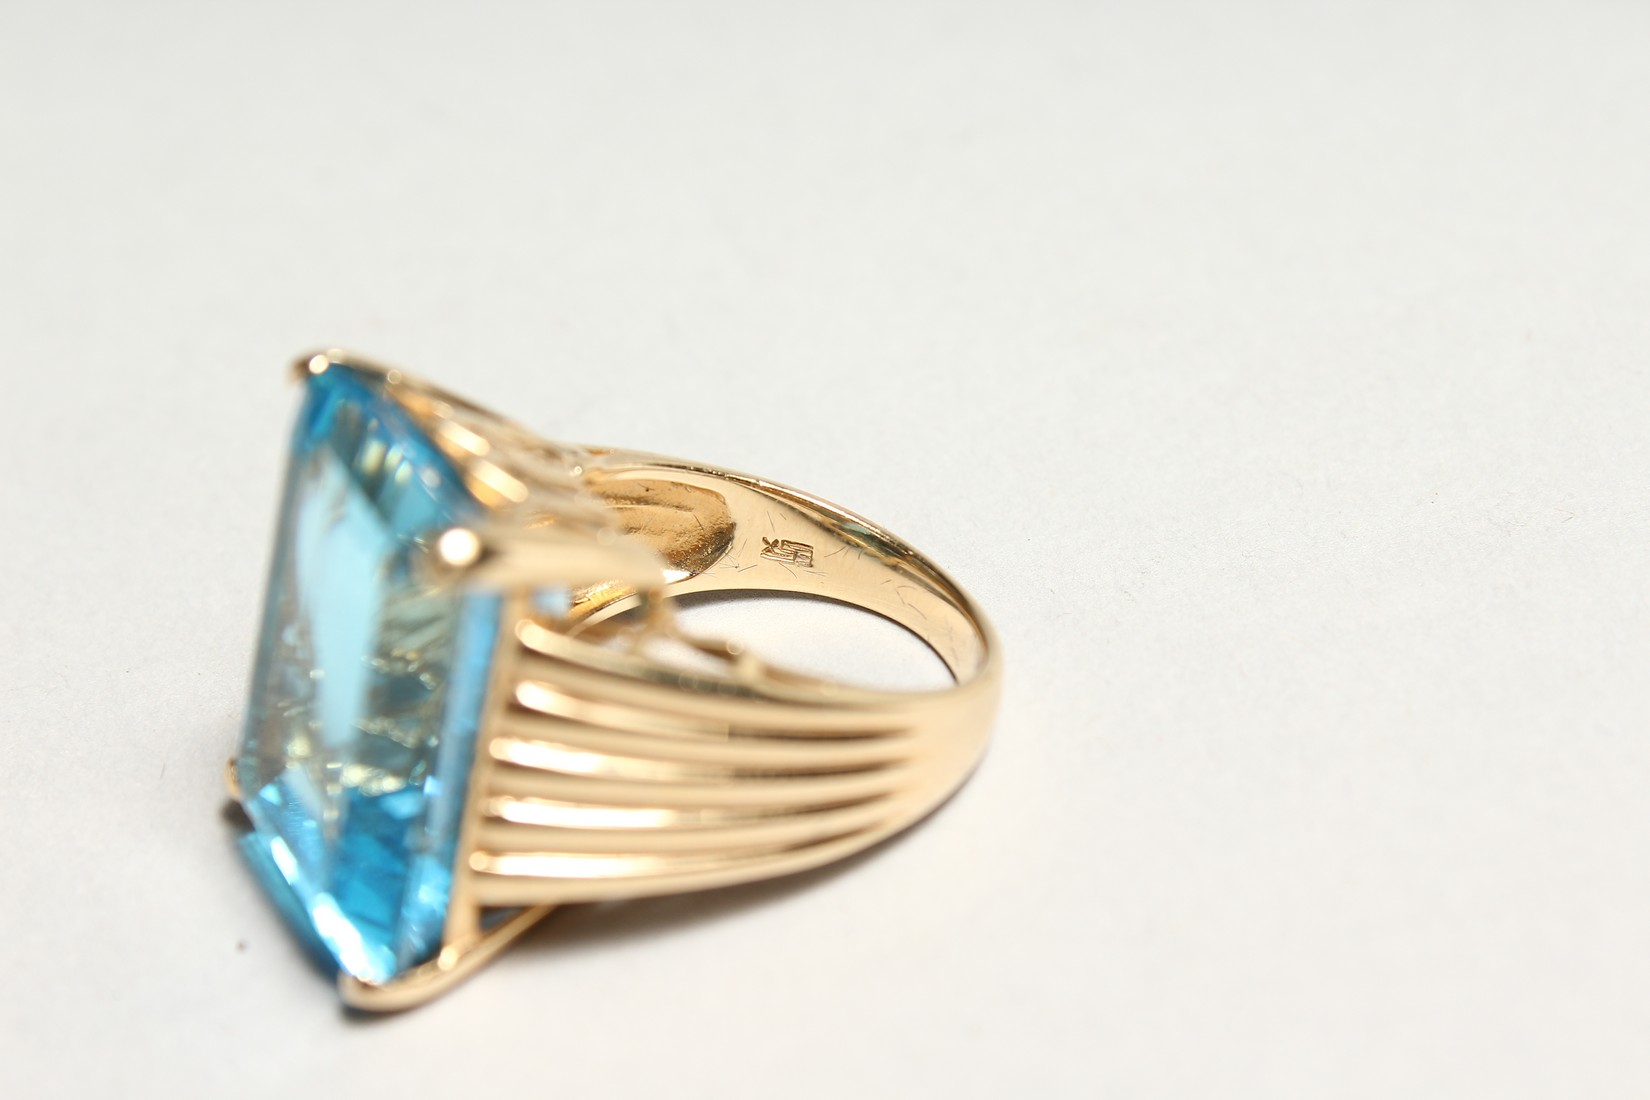 A GOOD 18CT GOLD LARGE TOPAZ SET RING. - Image 5 of 6